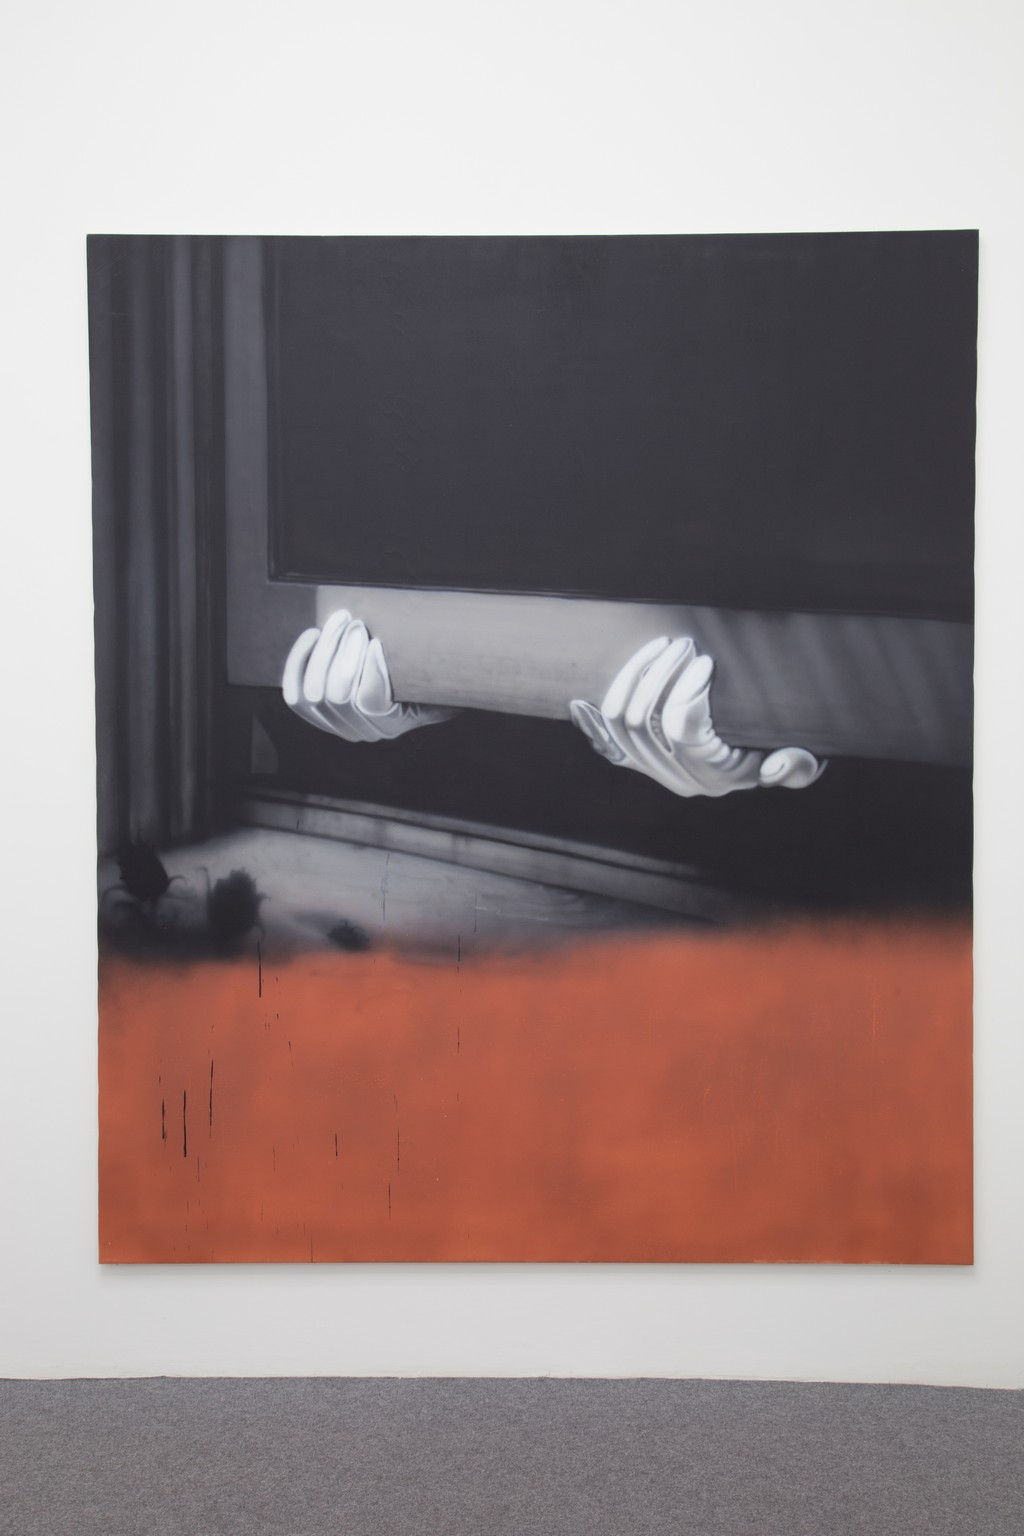 Sayre Gomez Thief Painting in Black and White and Red Oxide, 2015 acrylic on canvas 213 x 185 cm courtesy Acappella and D. Donzelli ph.